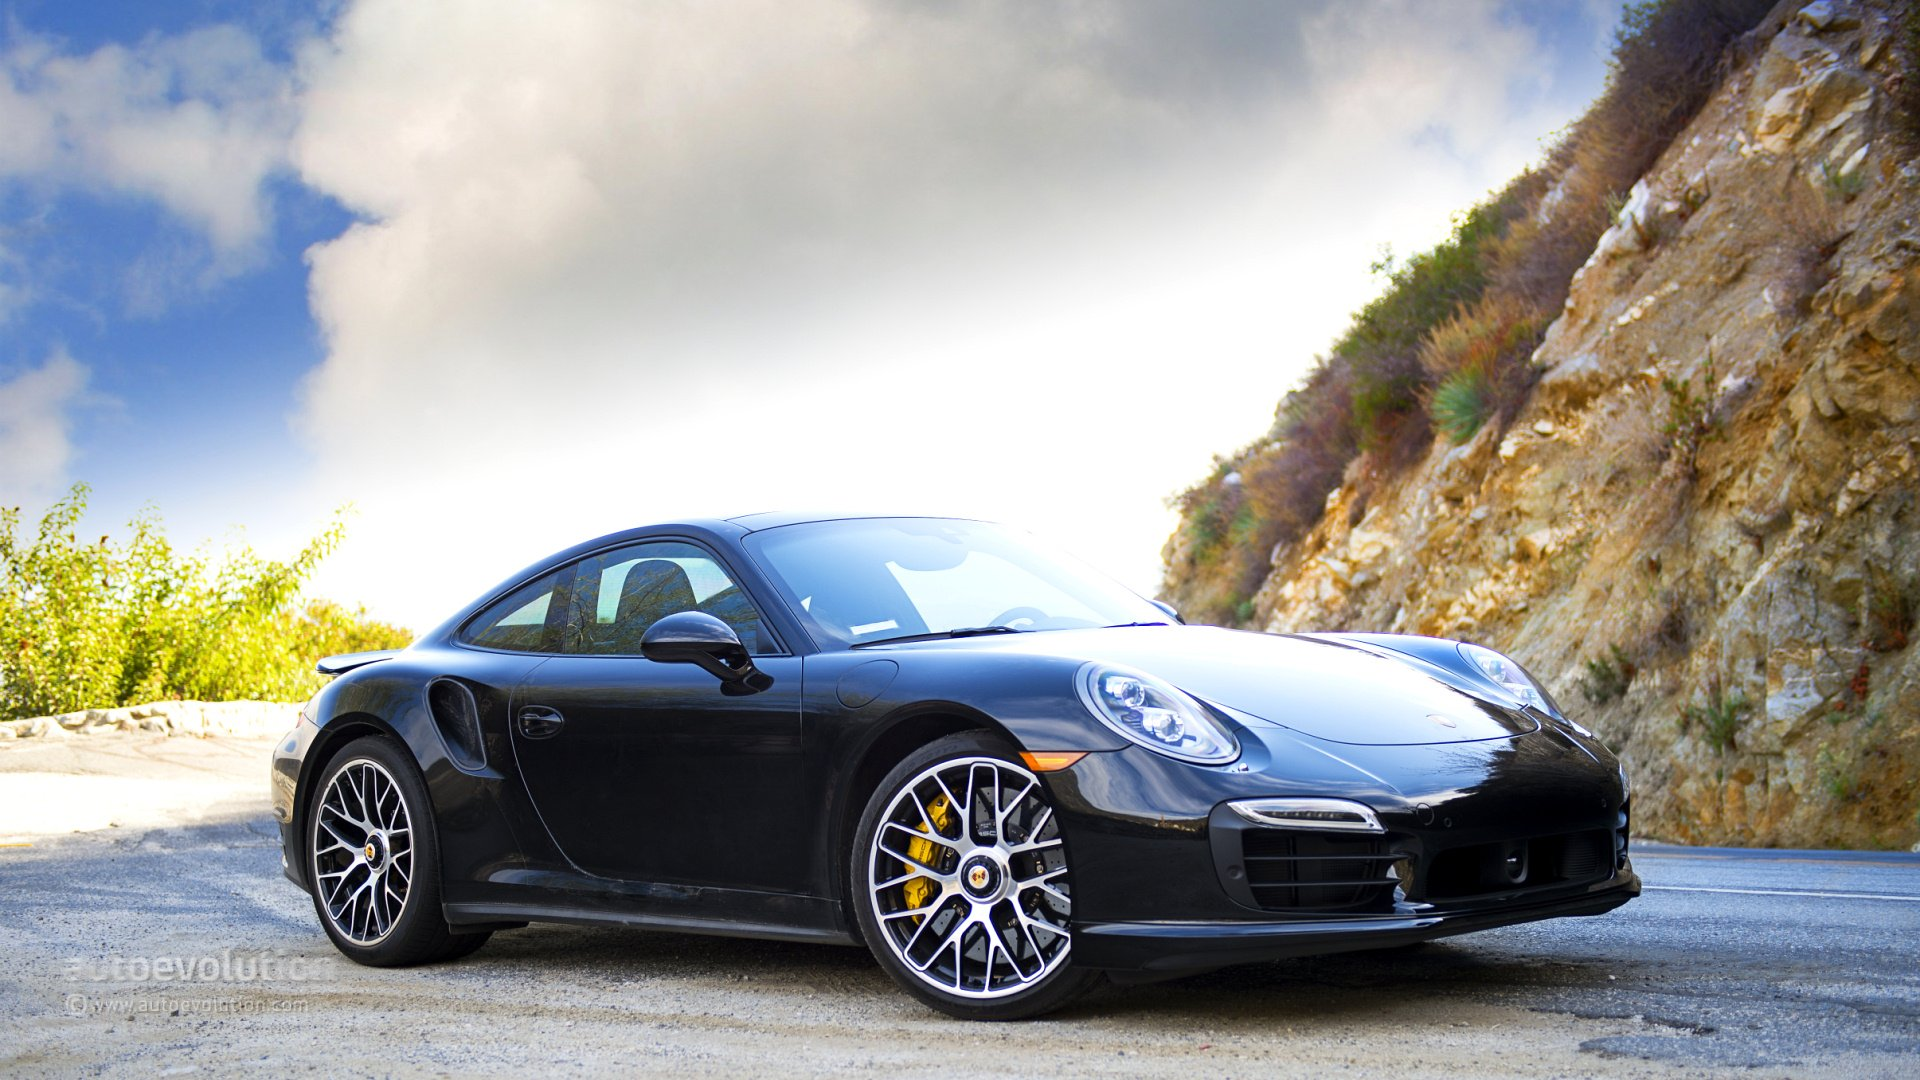 2014 porsche 911 991 turbo s coupe cars wallpaper 1920x1080 805764 wallpaperup